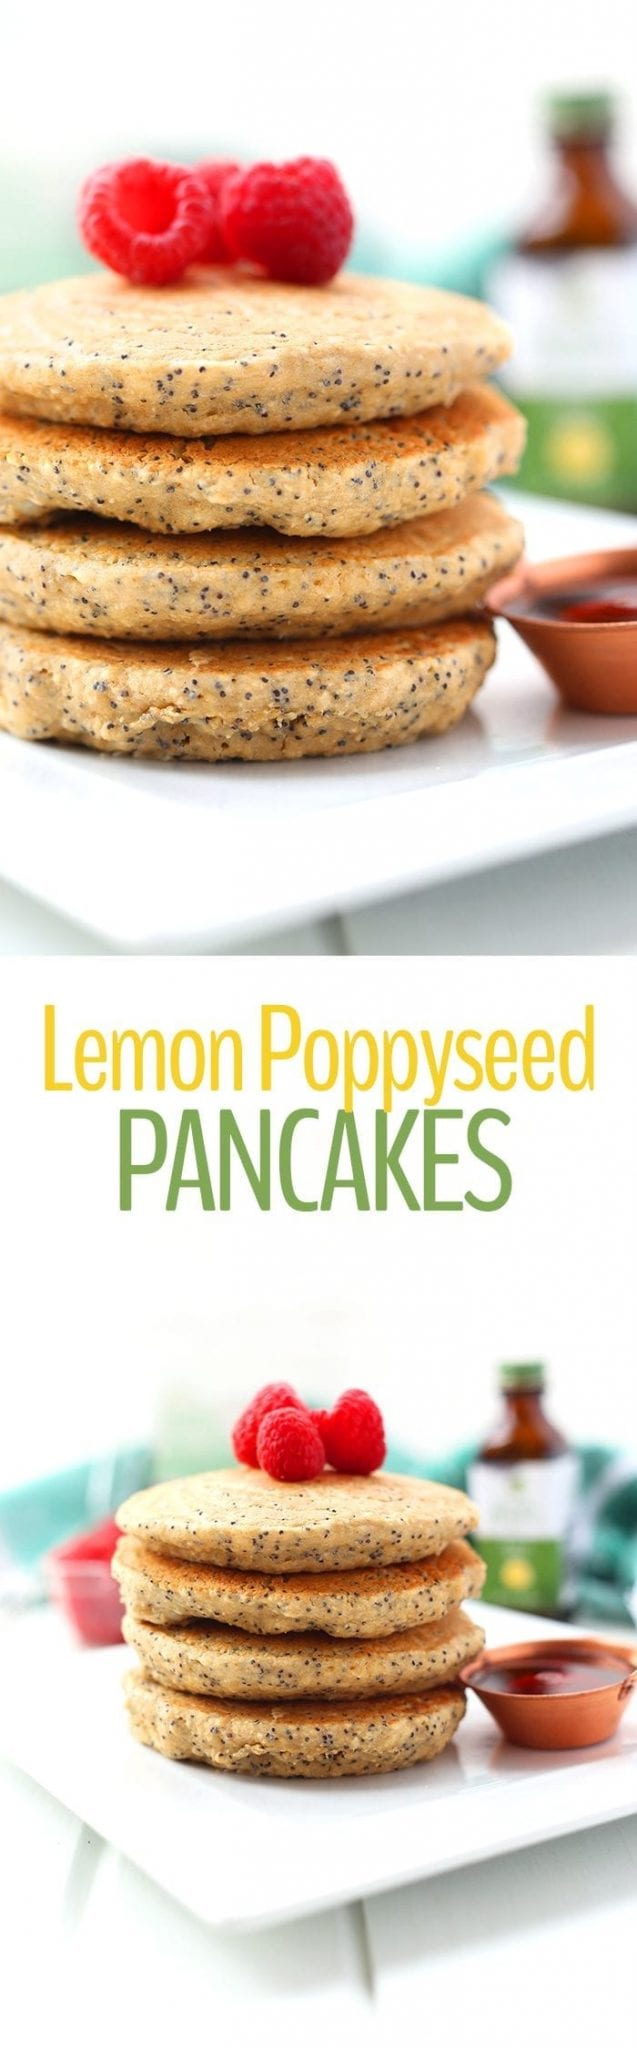 Spring into action with these Healthy Lemon Poppyseed Pancakes! They're made with wholesome ingredients that will make you feel good about your next brunch recipe.